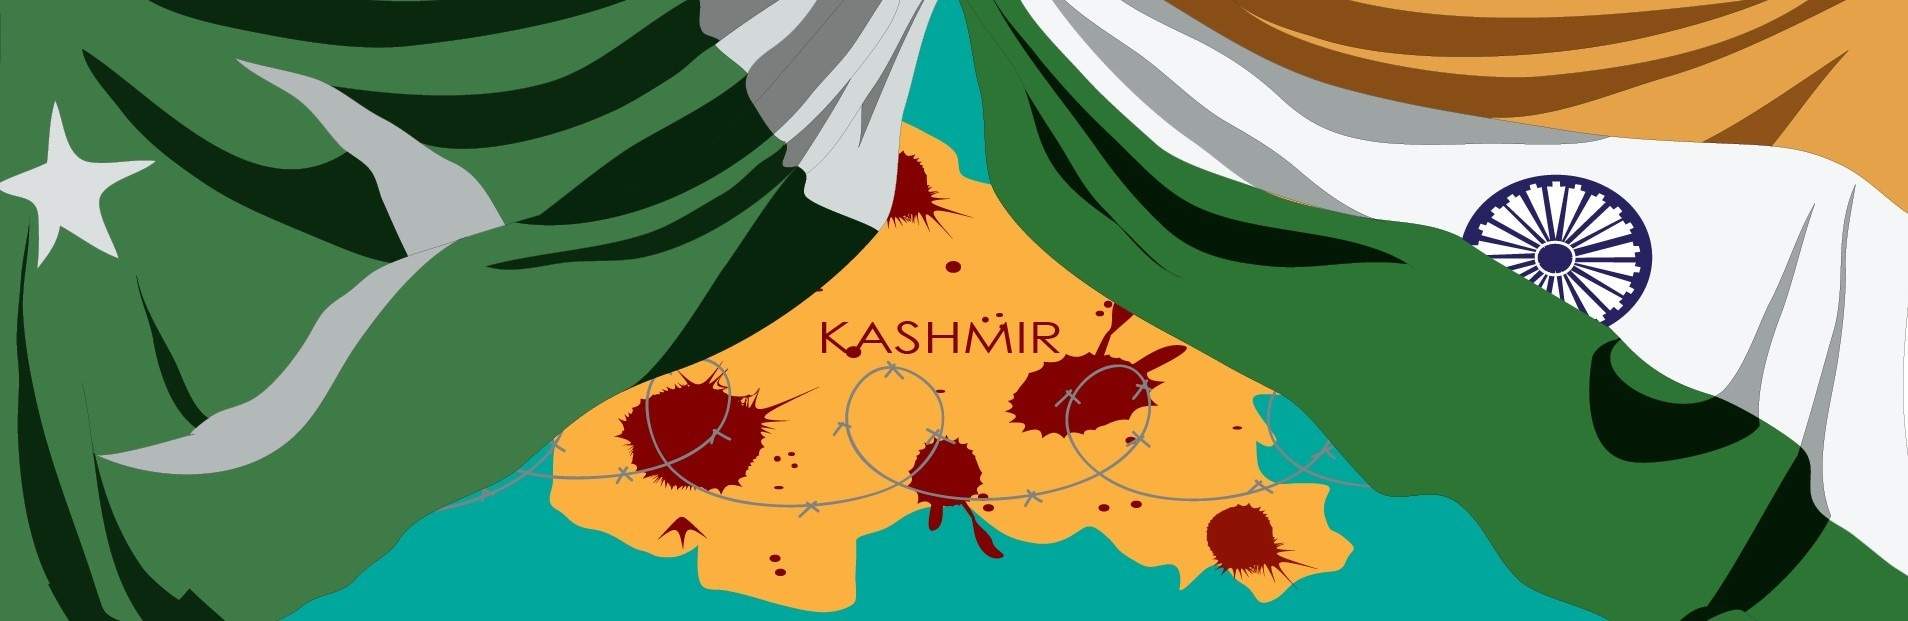 India, Pakistan held secret talks to try to break Kashmir impasse